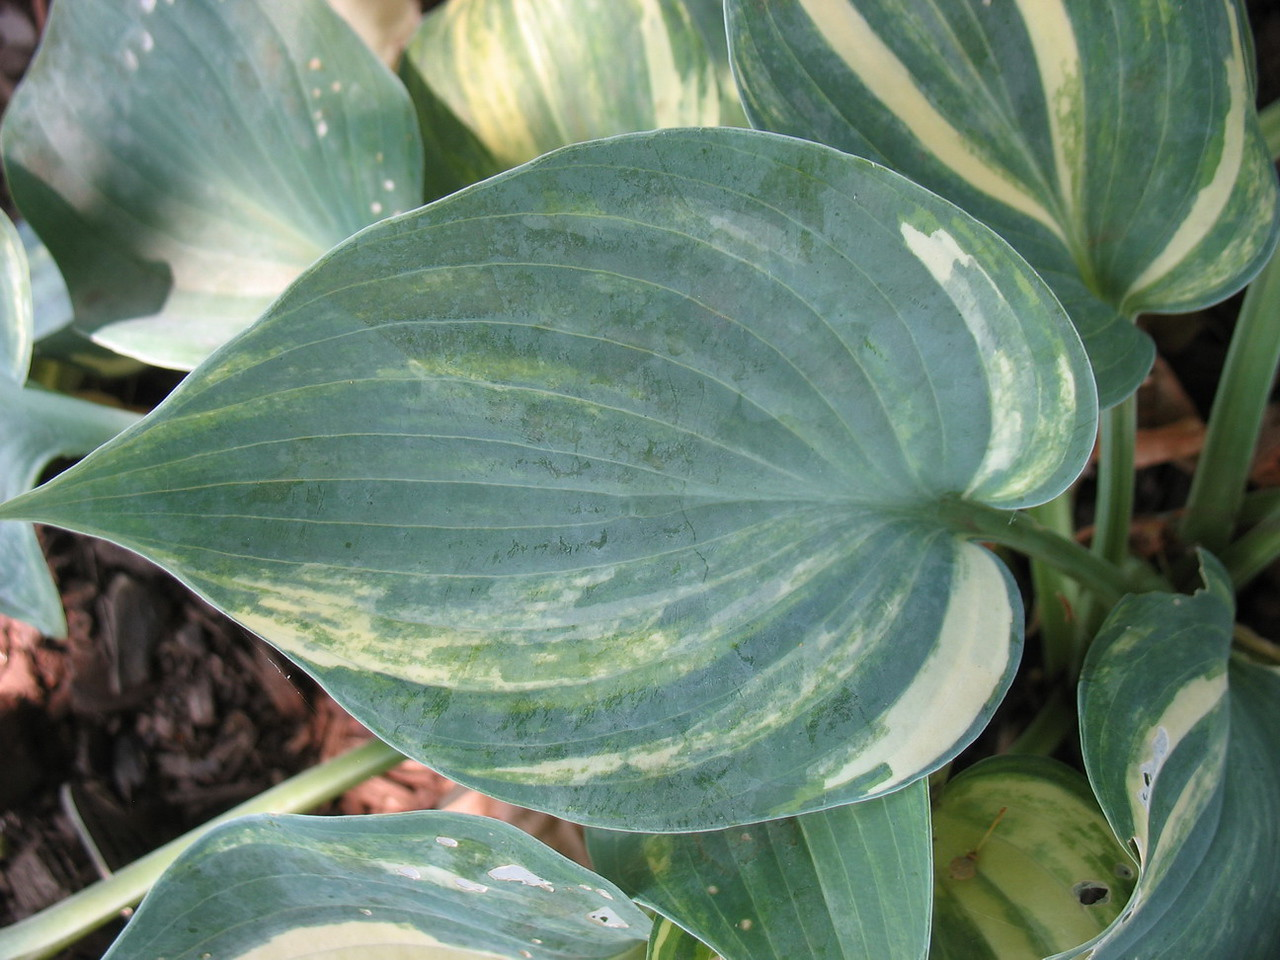 Hosta 'Pewterware' - streaked sport - 2012 - July 14